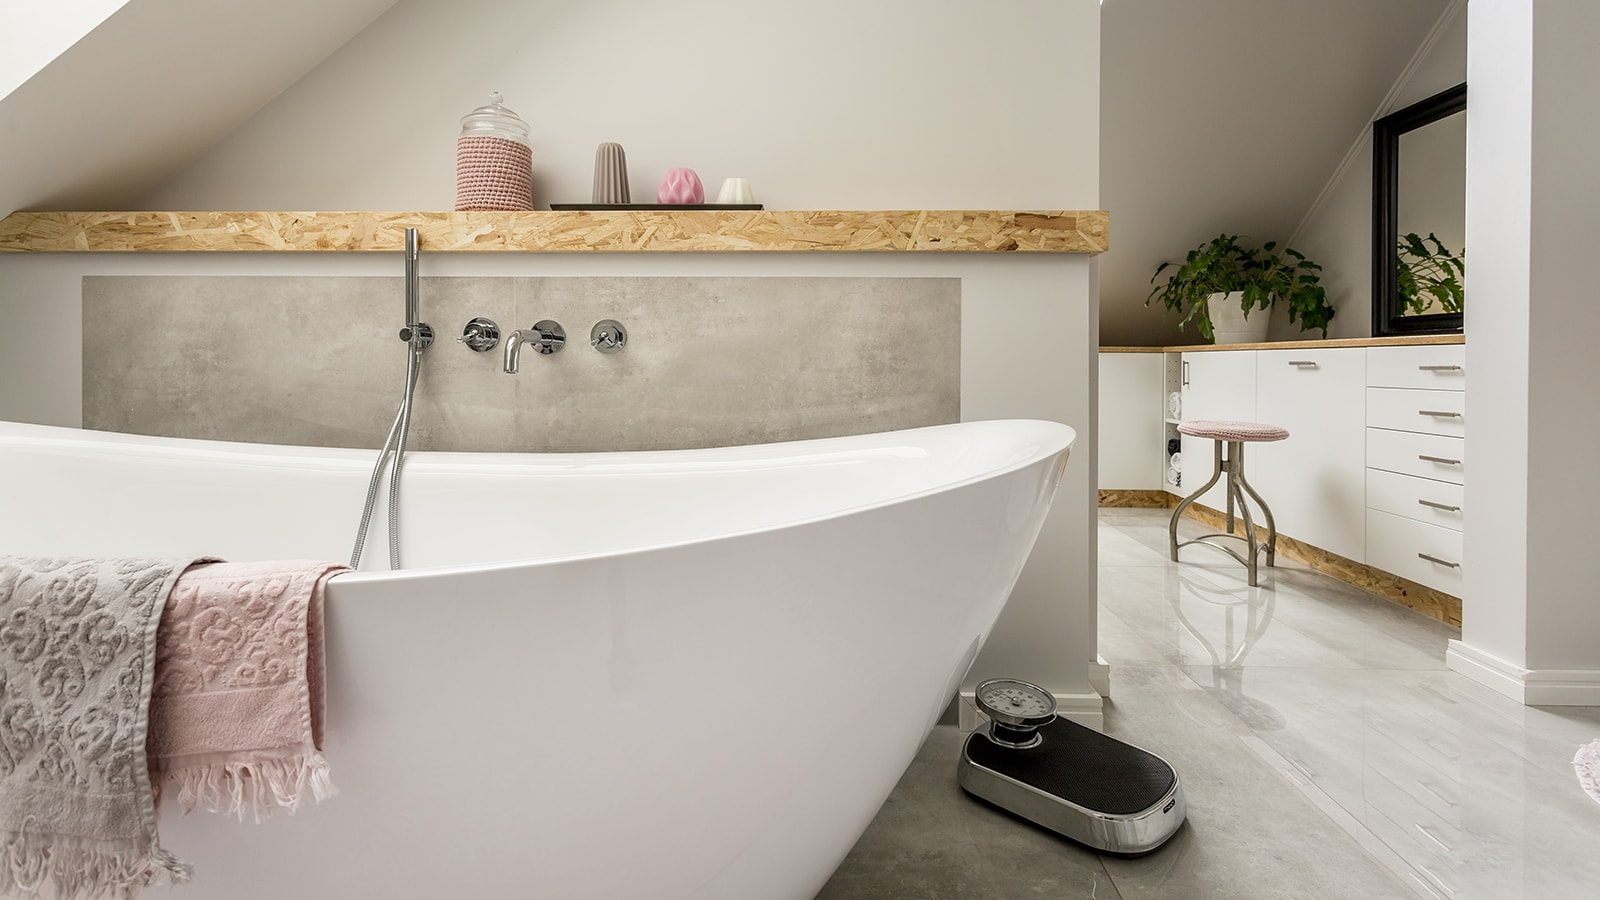 Bath tub in ensuite bathroom